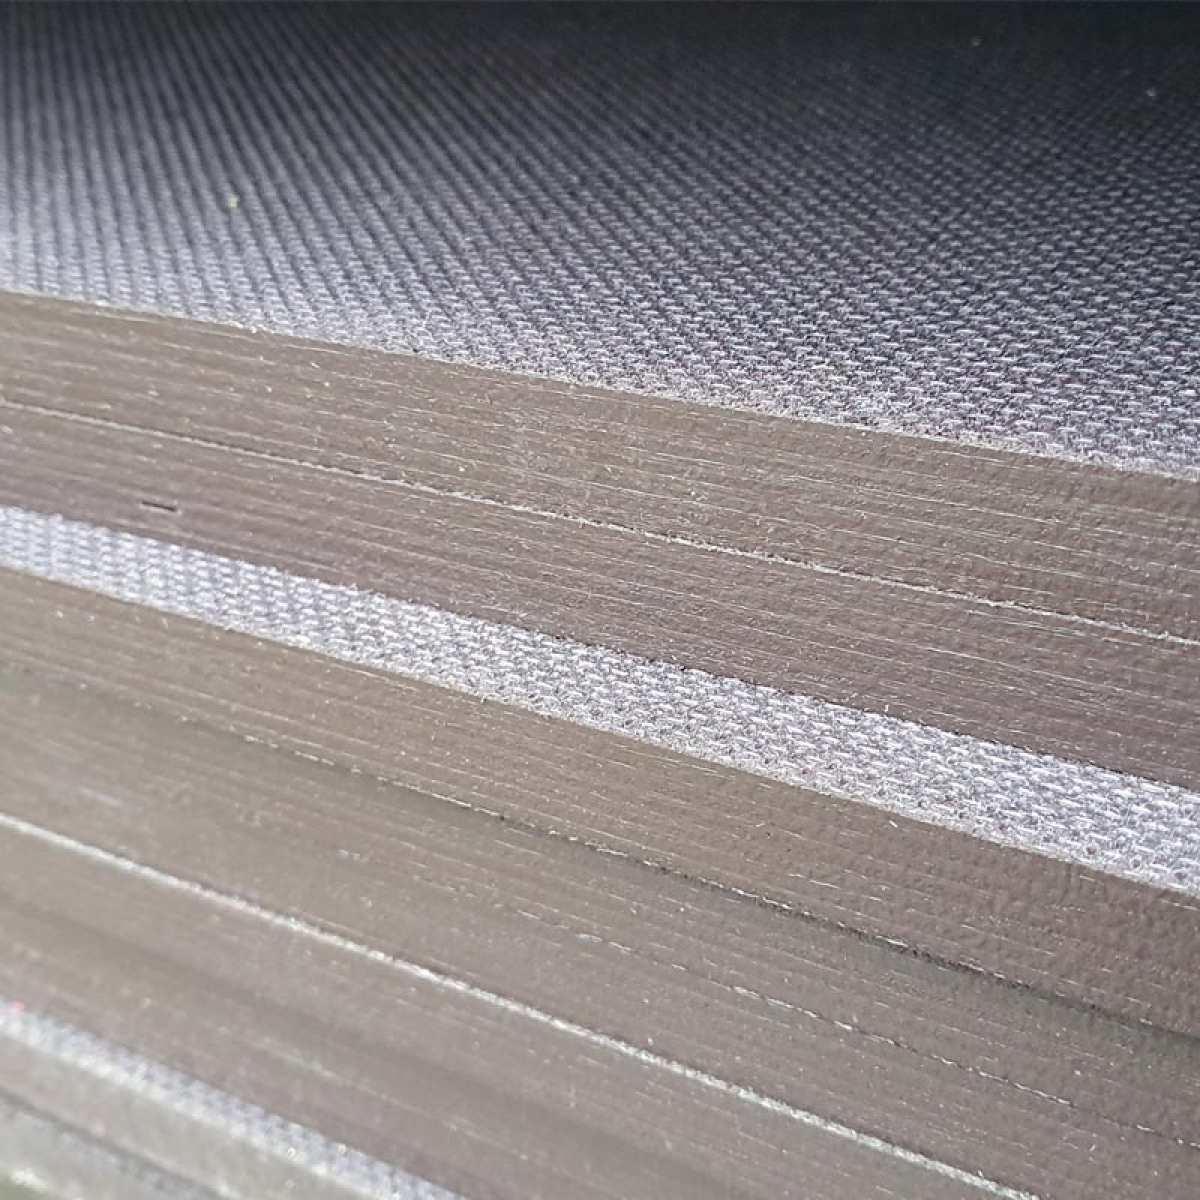 phenolic ply sheeting Image by Websters Timber